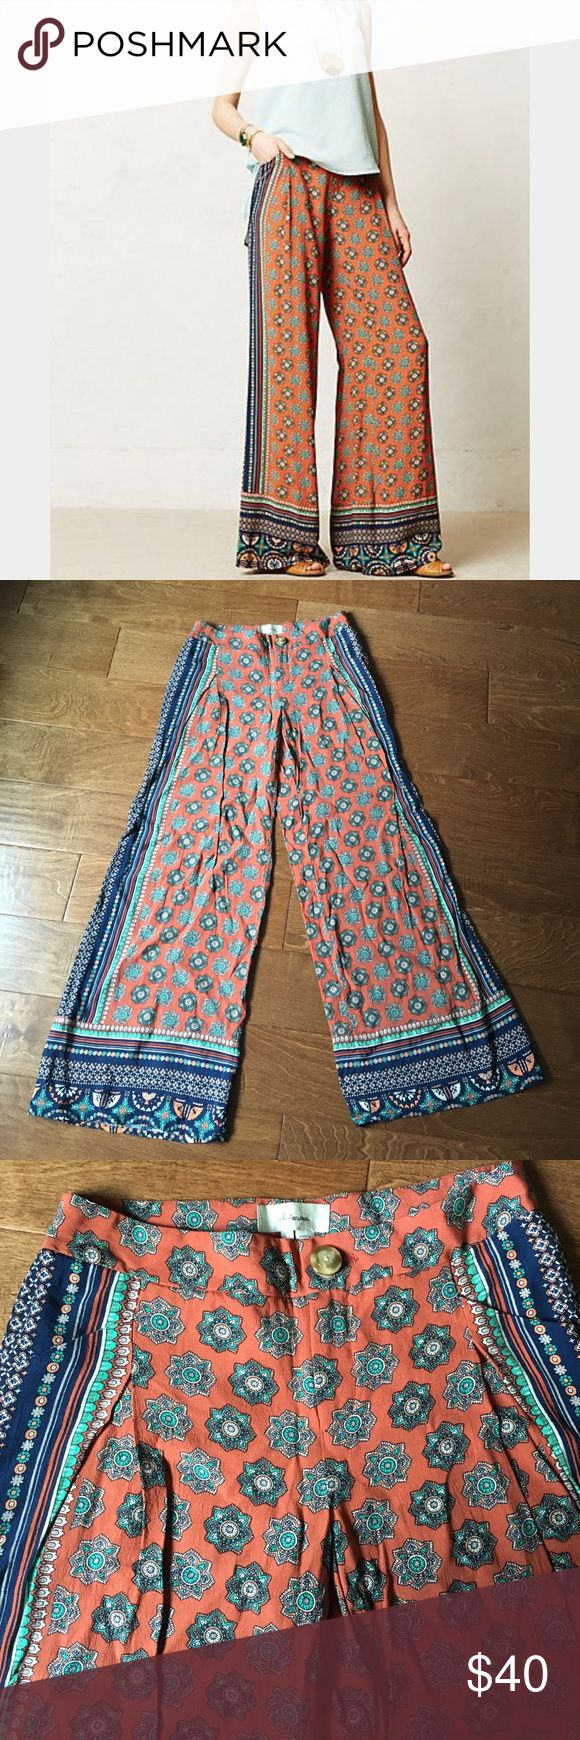 Printed Palazzo Pants Anthropologie brand Elevenses silky wide leg palazzo pants. Pumpkin orange base with navy panel down the sides. Other colors in pattern are cream and seafoam green. Zip and button front closure. Does have front pockets. Anthropologie Pants Wide Leg